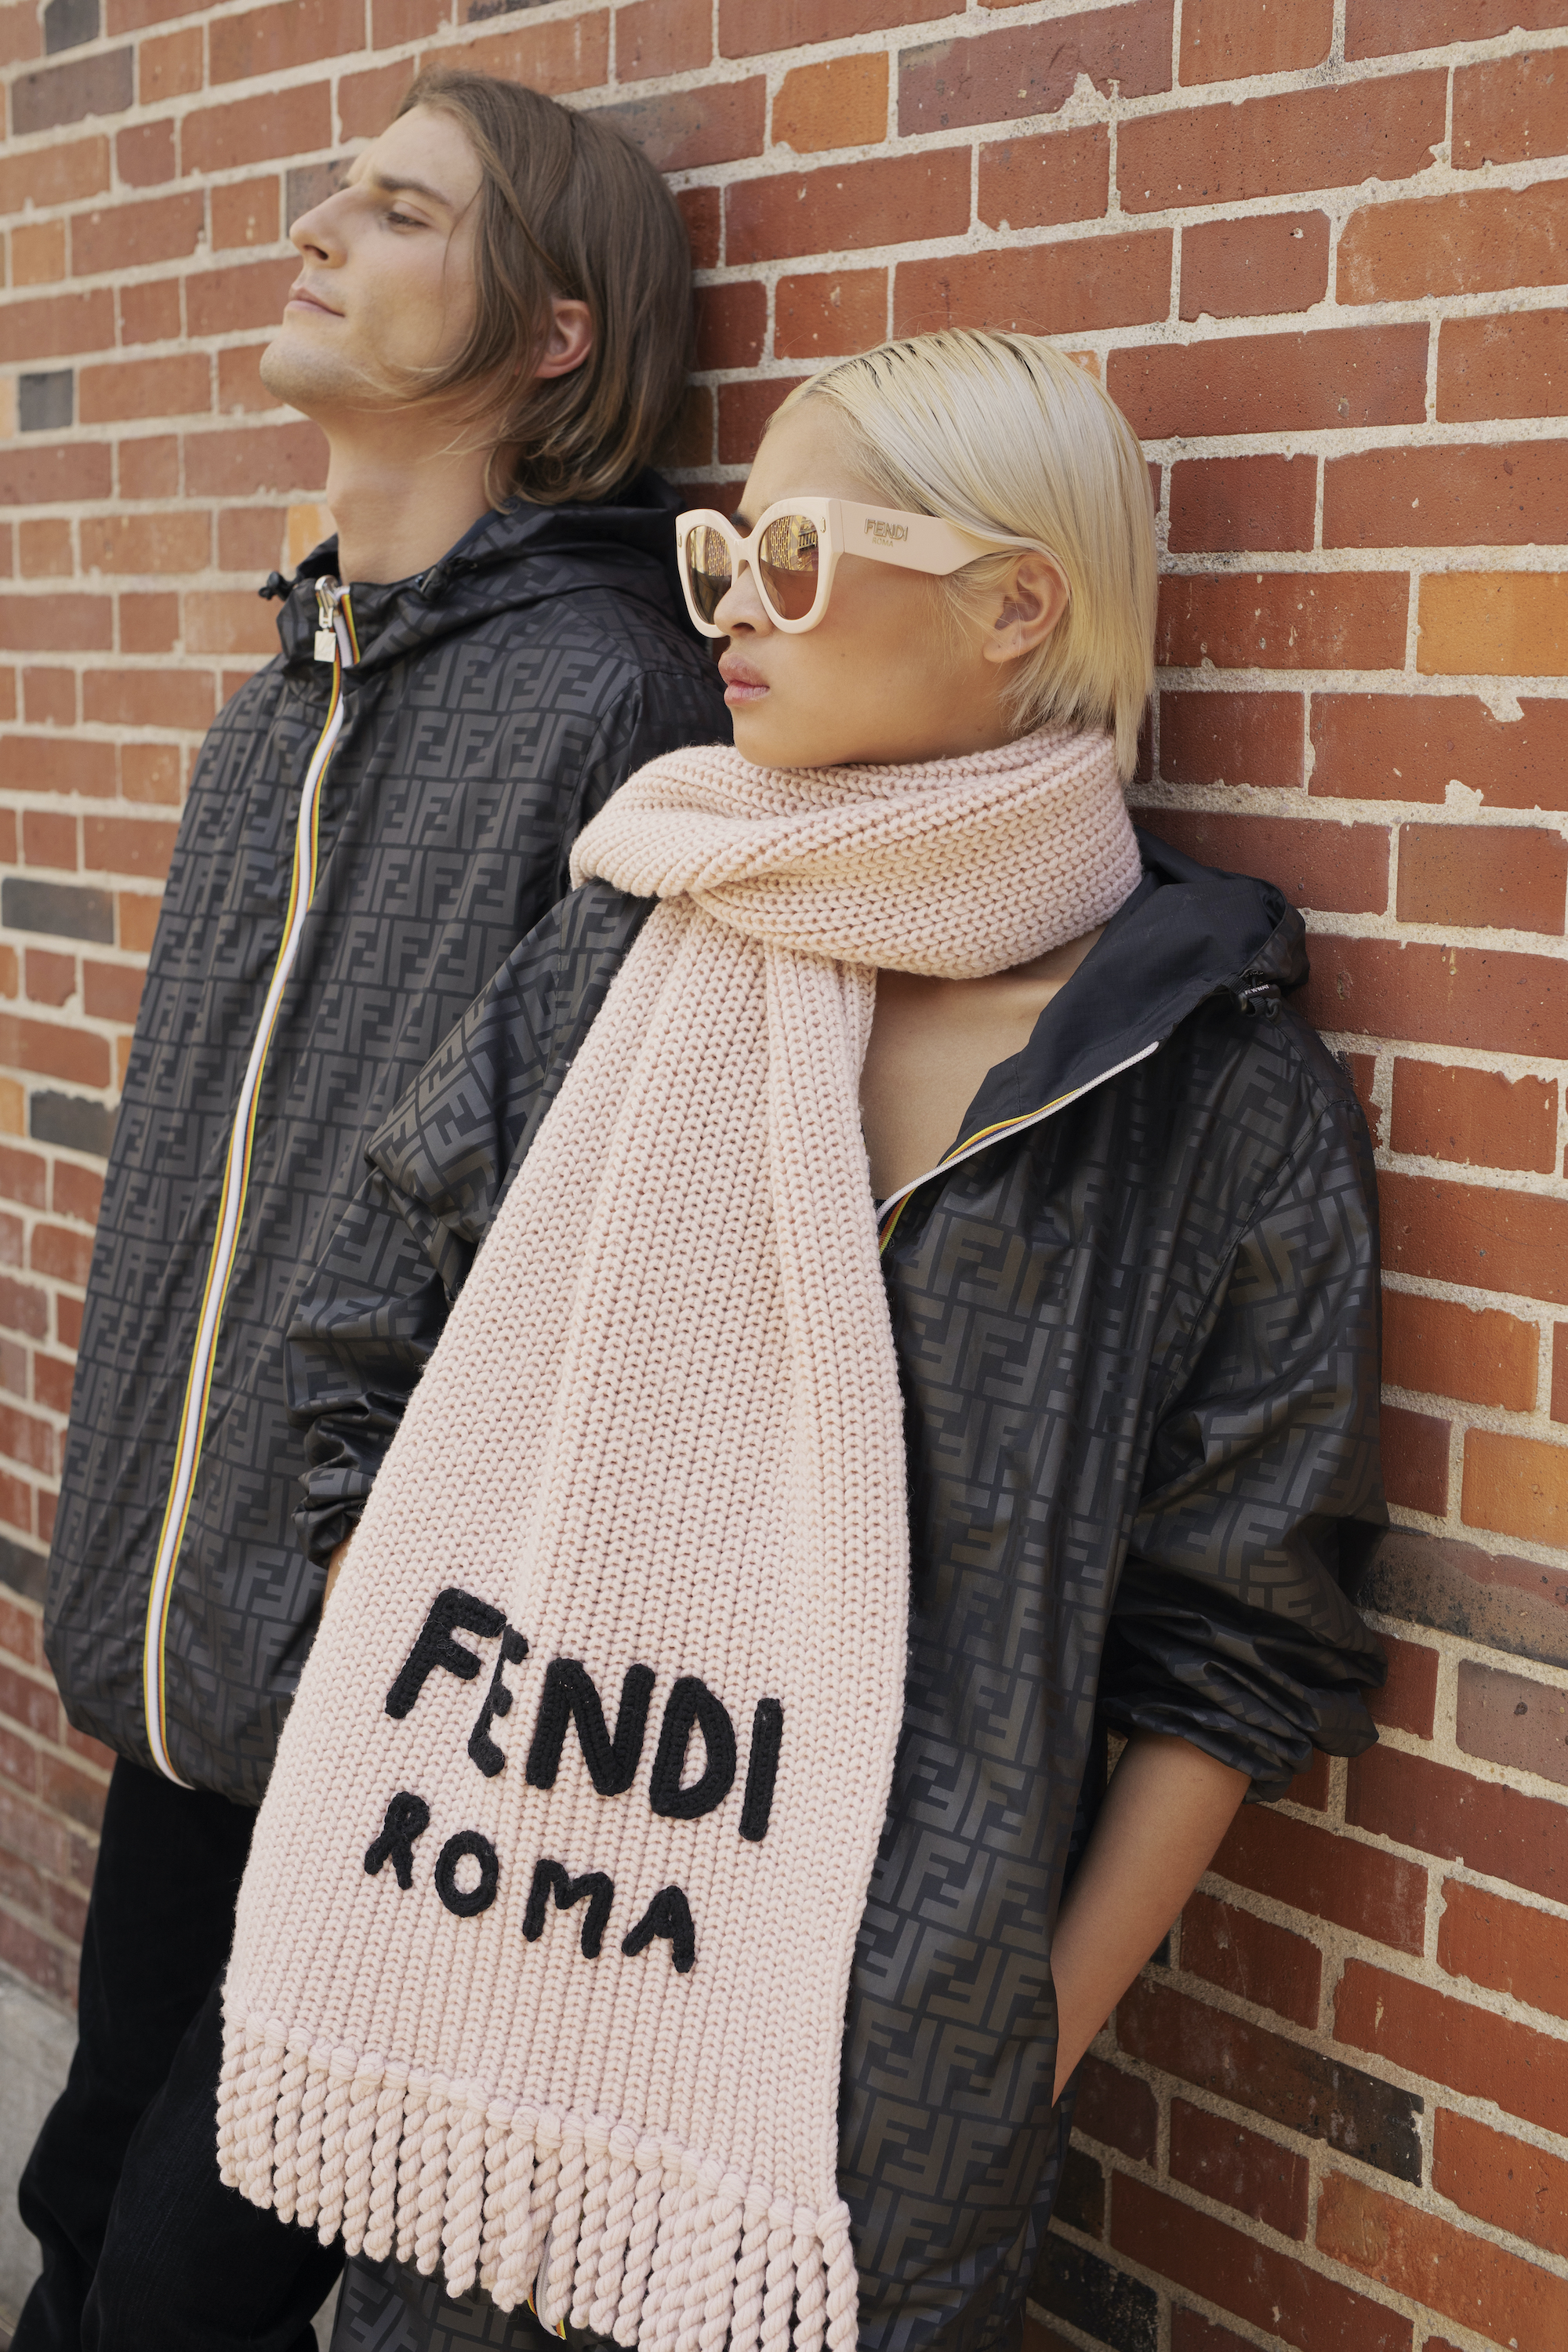 FENDI roma hoilday capsule collection